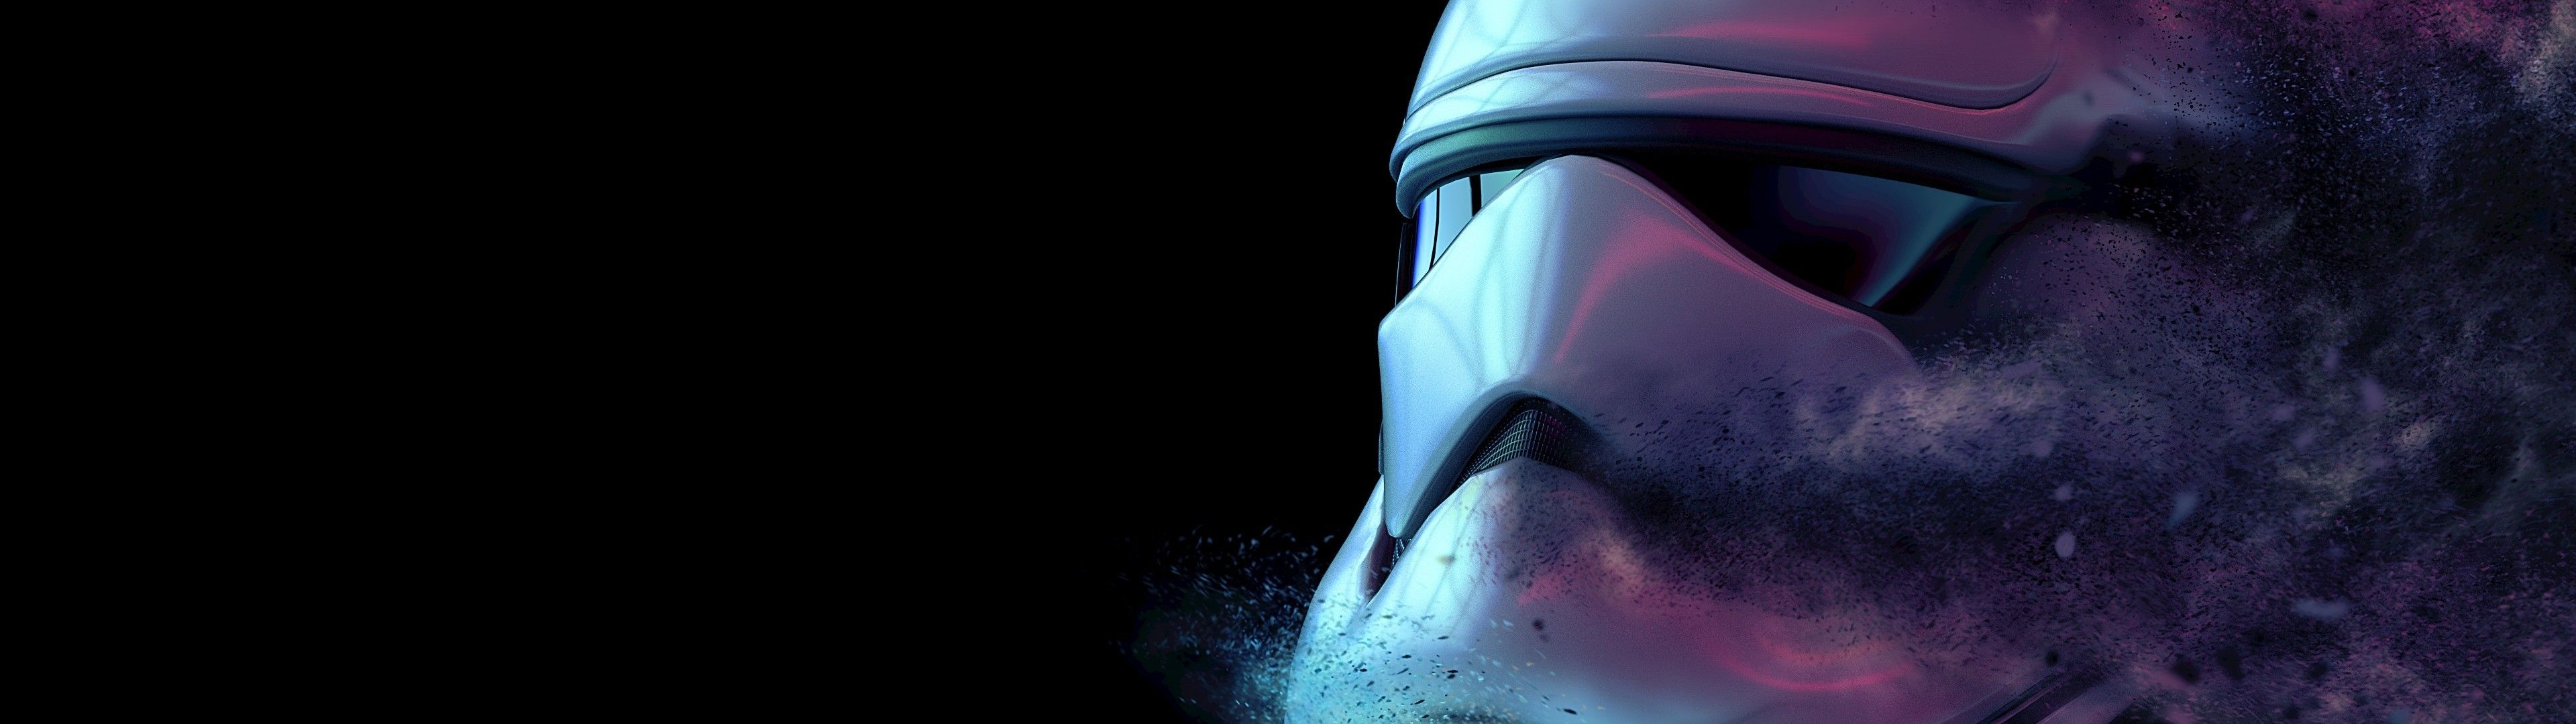 3840 X 1080 Star Wars Wallpapers Top Free 3840 X 1080 Star Wars Backgrounds Wallpaperaccess